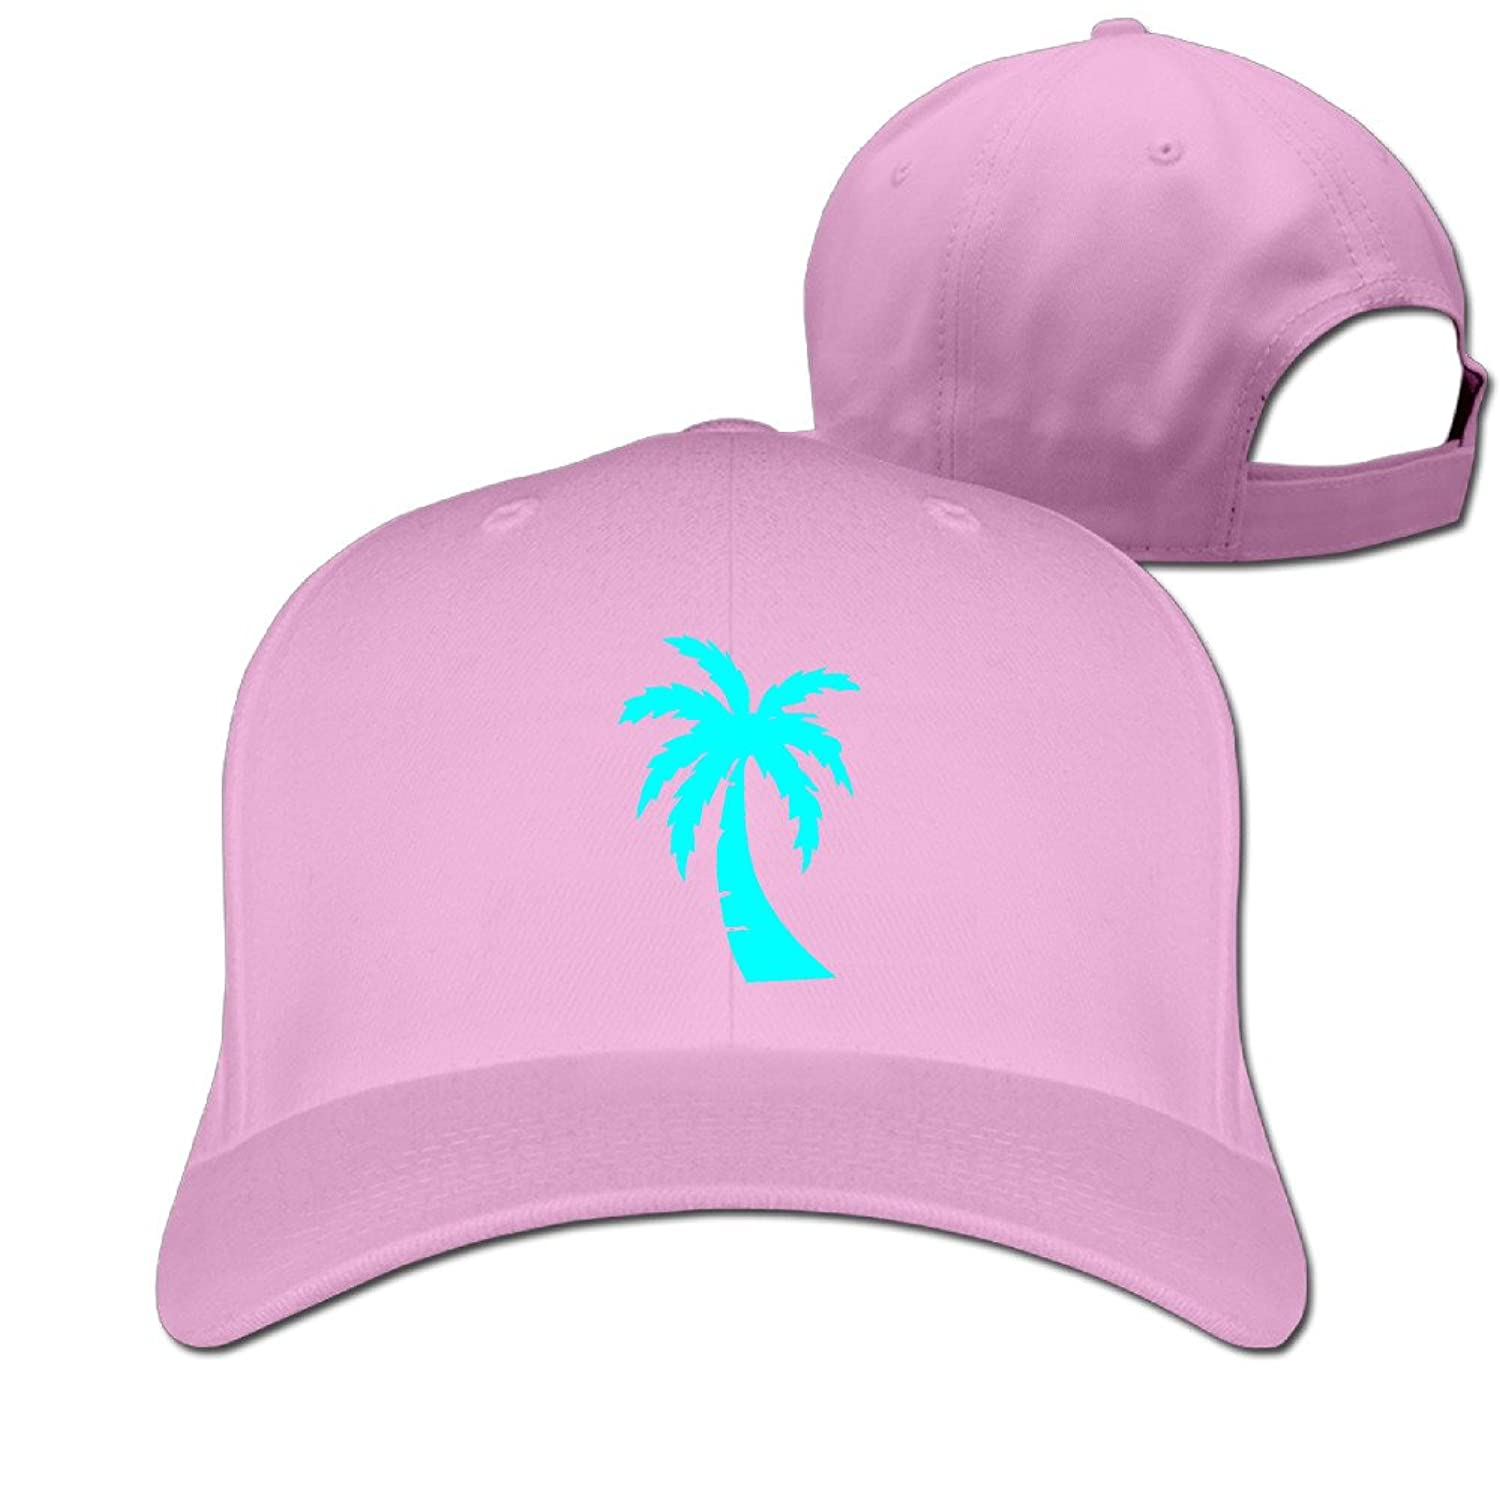 Unisex Fashion Street California Republic Turquoise Palm Flat-along Caps Visor Hats Sun Hat